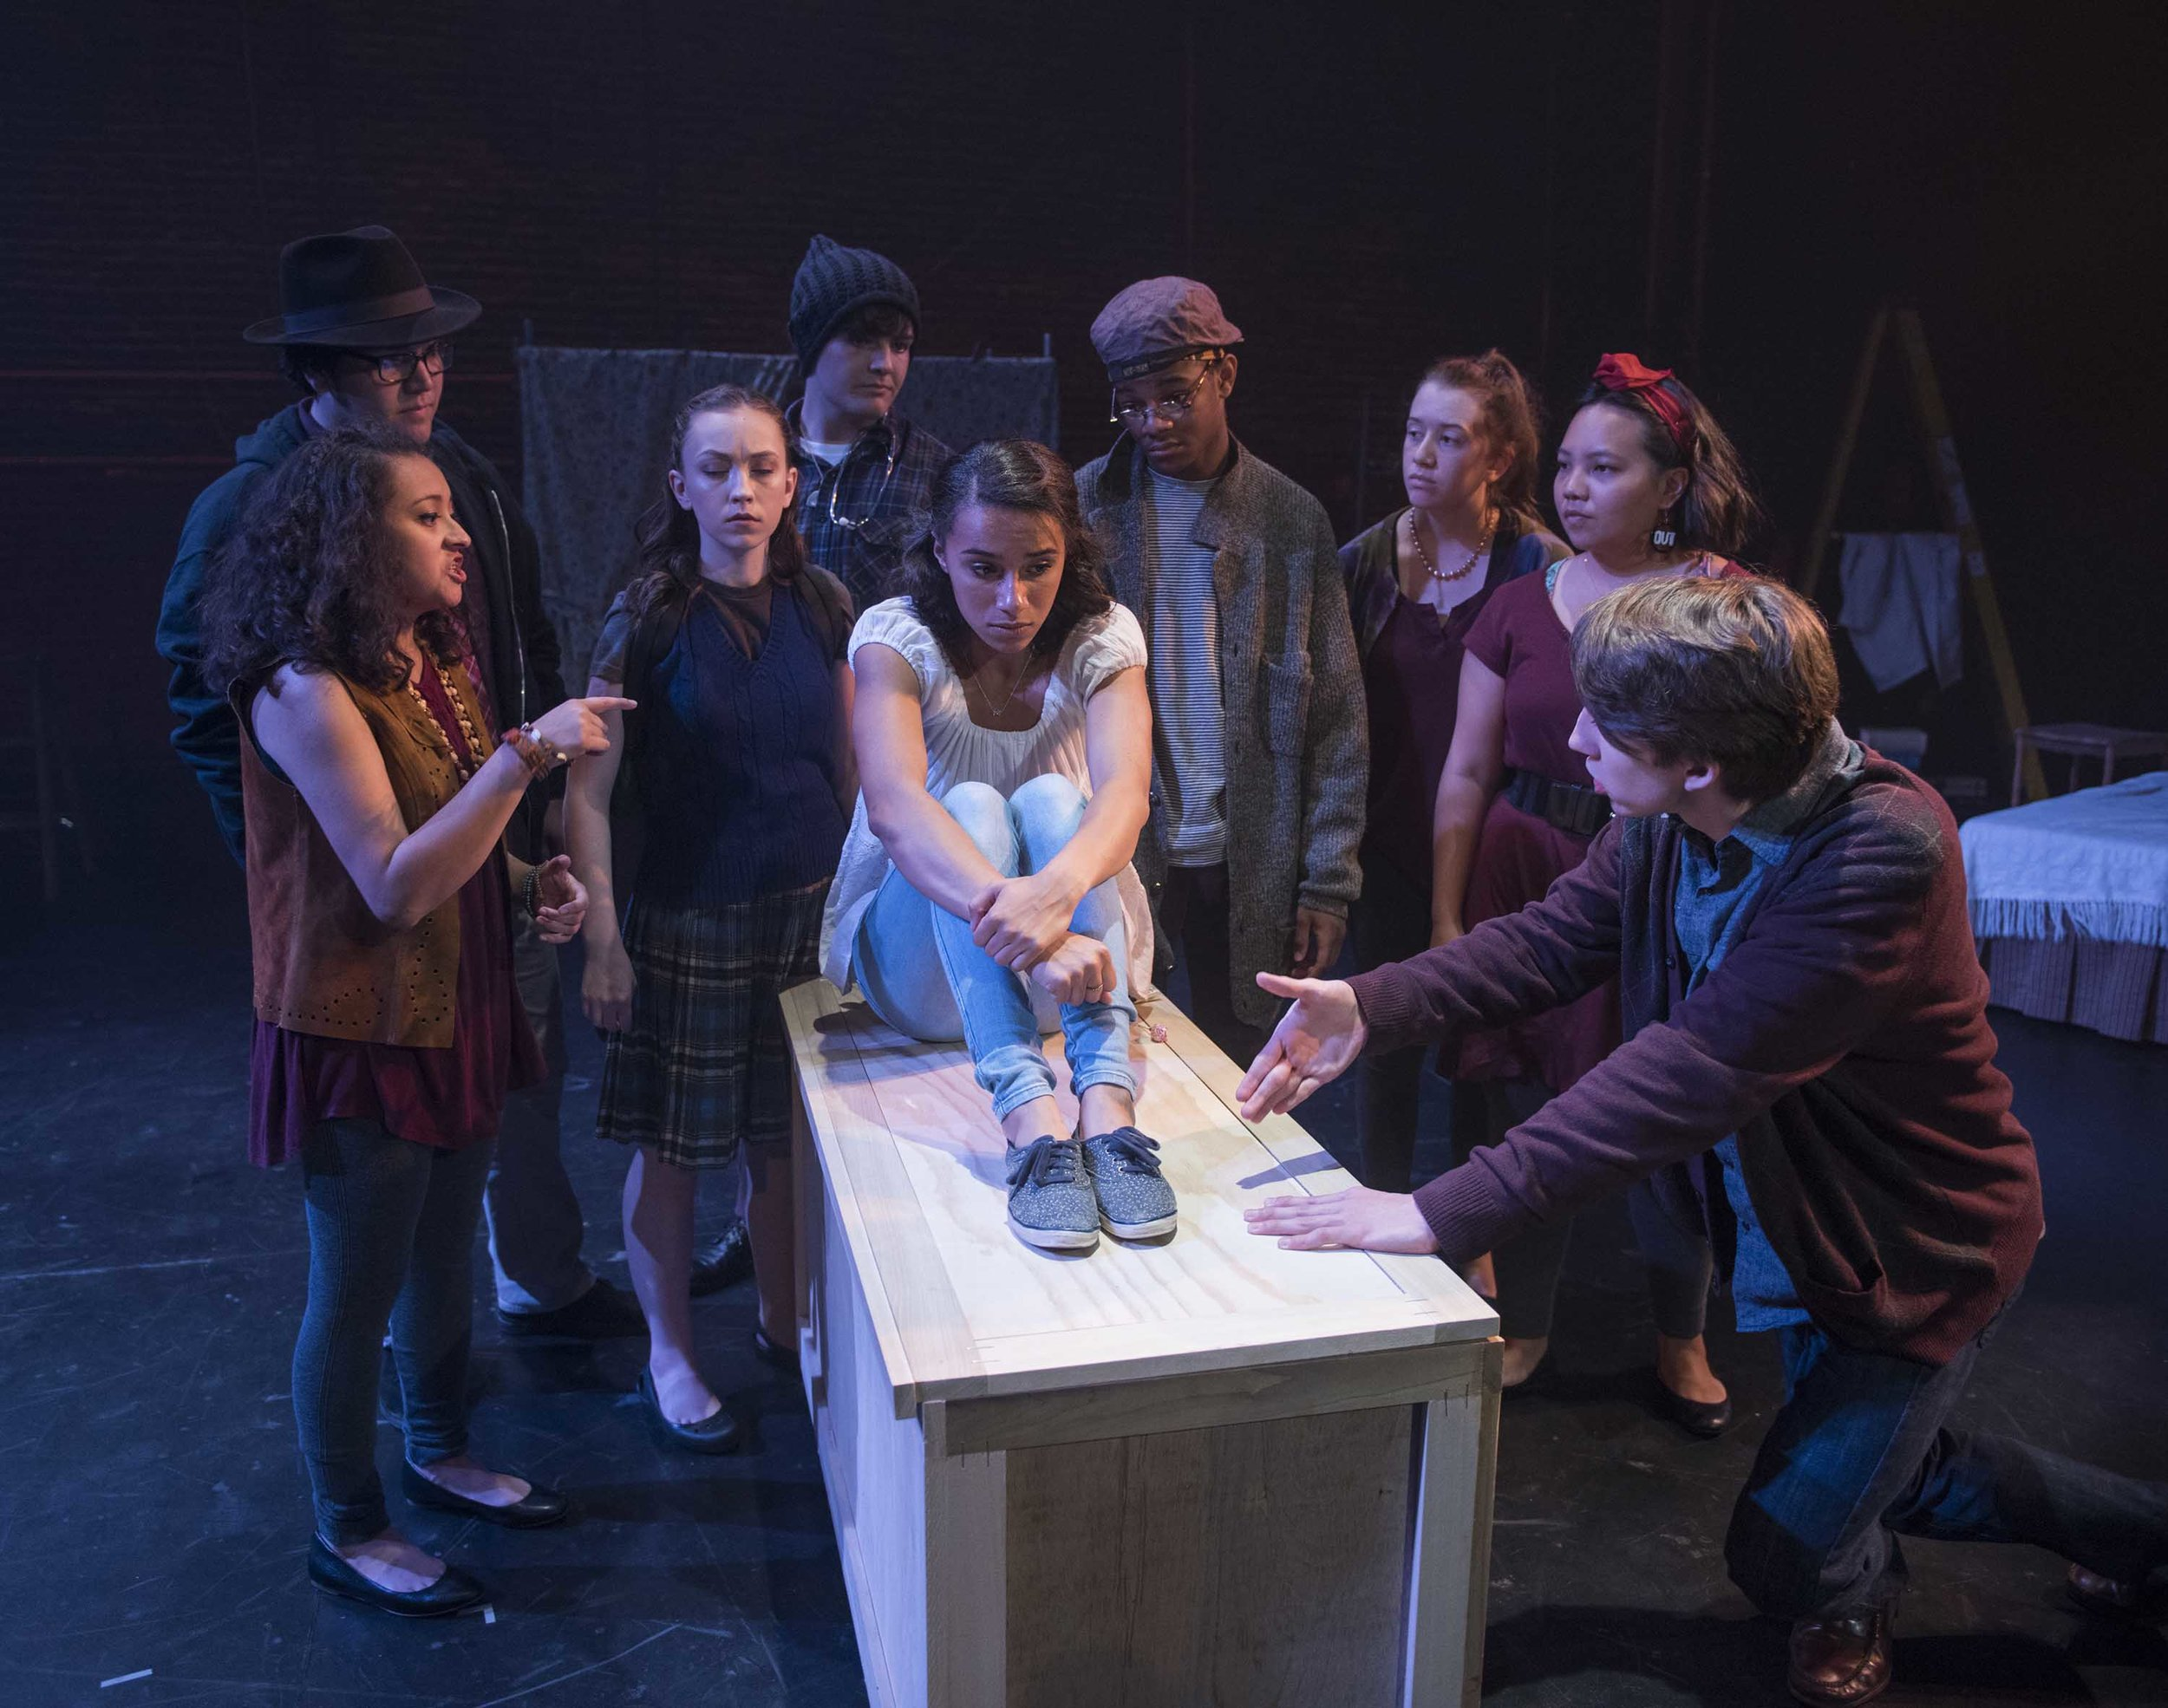 Milwaukee Repertory Theater's Professional Training Institute Ensemble presents the World Premiere of Lost Girl by Kimberly Belflower in the Stiemke Studio from July 19 to July 22, 2018. Left to Right: Juliana Garcia-Malacara, Logan Muñoz, Meguire Hennes, Dominic Schiro, Reese Parish, Durran Goodwin Jr, Maricella Kessenich, Mainyia Xiong, and Bradley Nowacek. Photo by Michael Brosilow